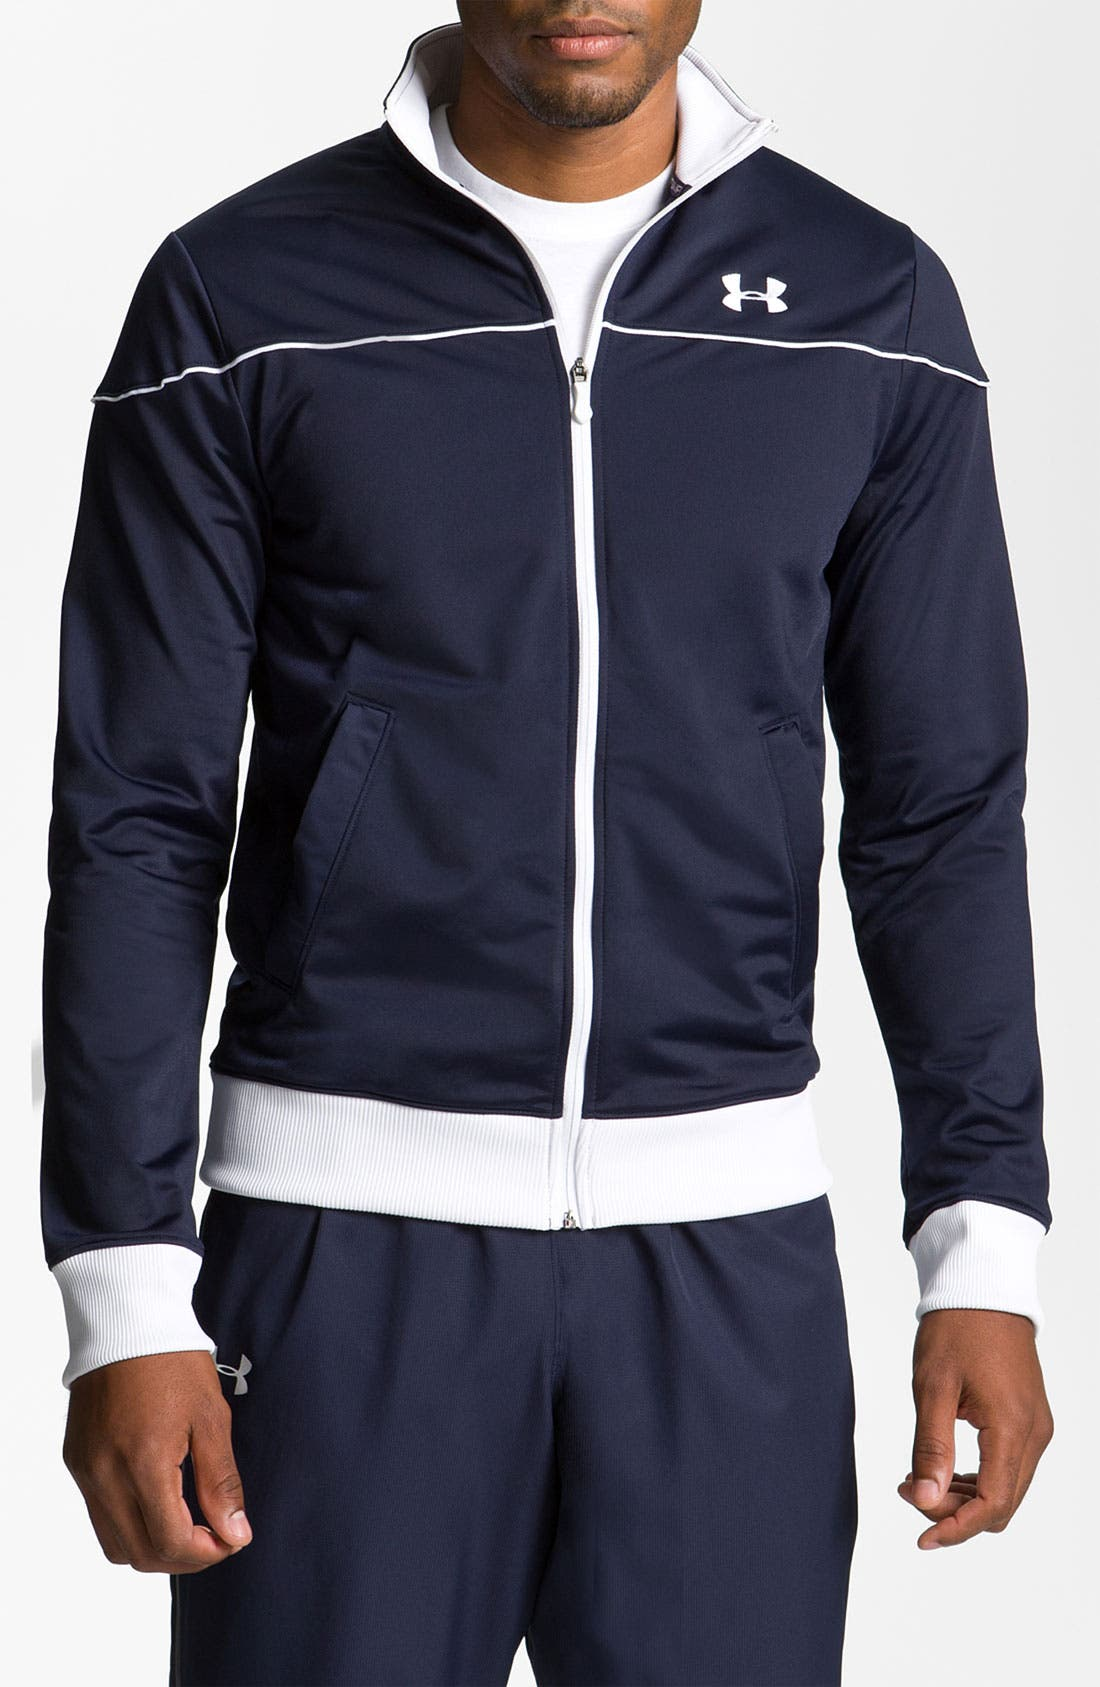 Main Image - Under Armour 'Strength' Jacket